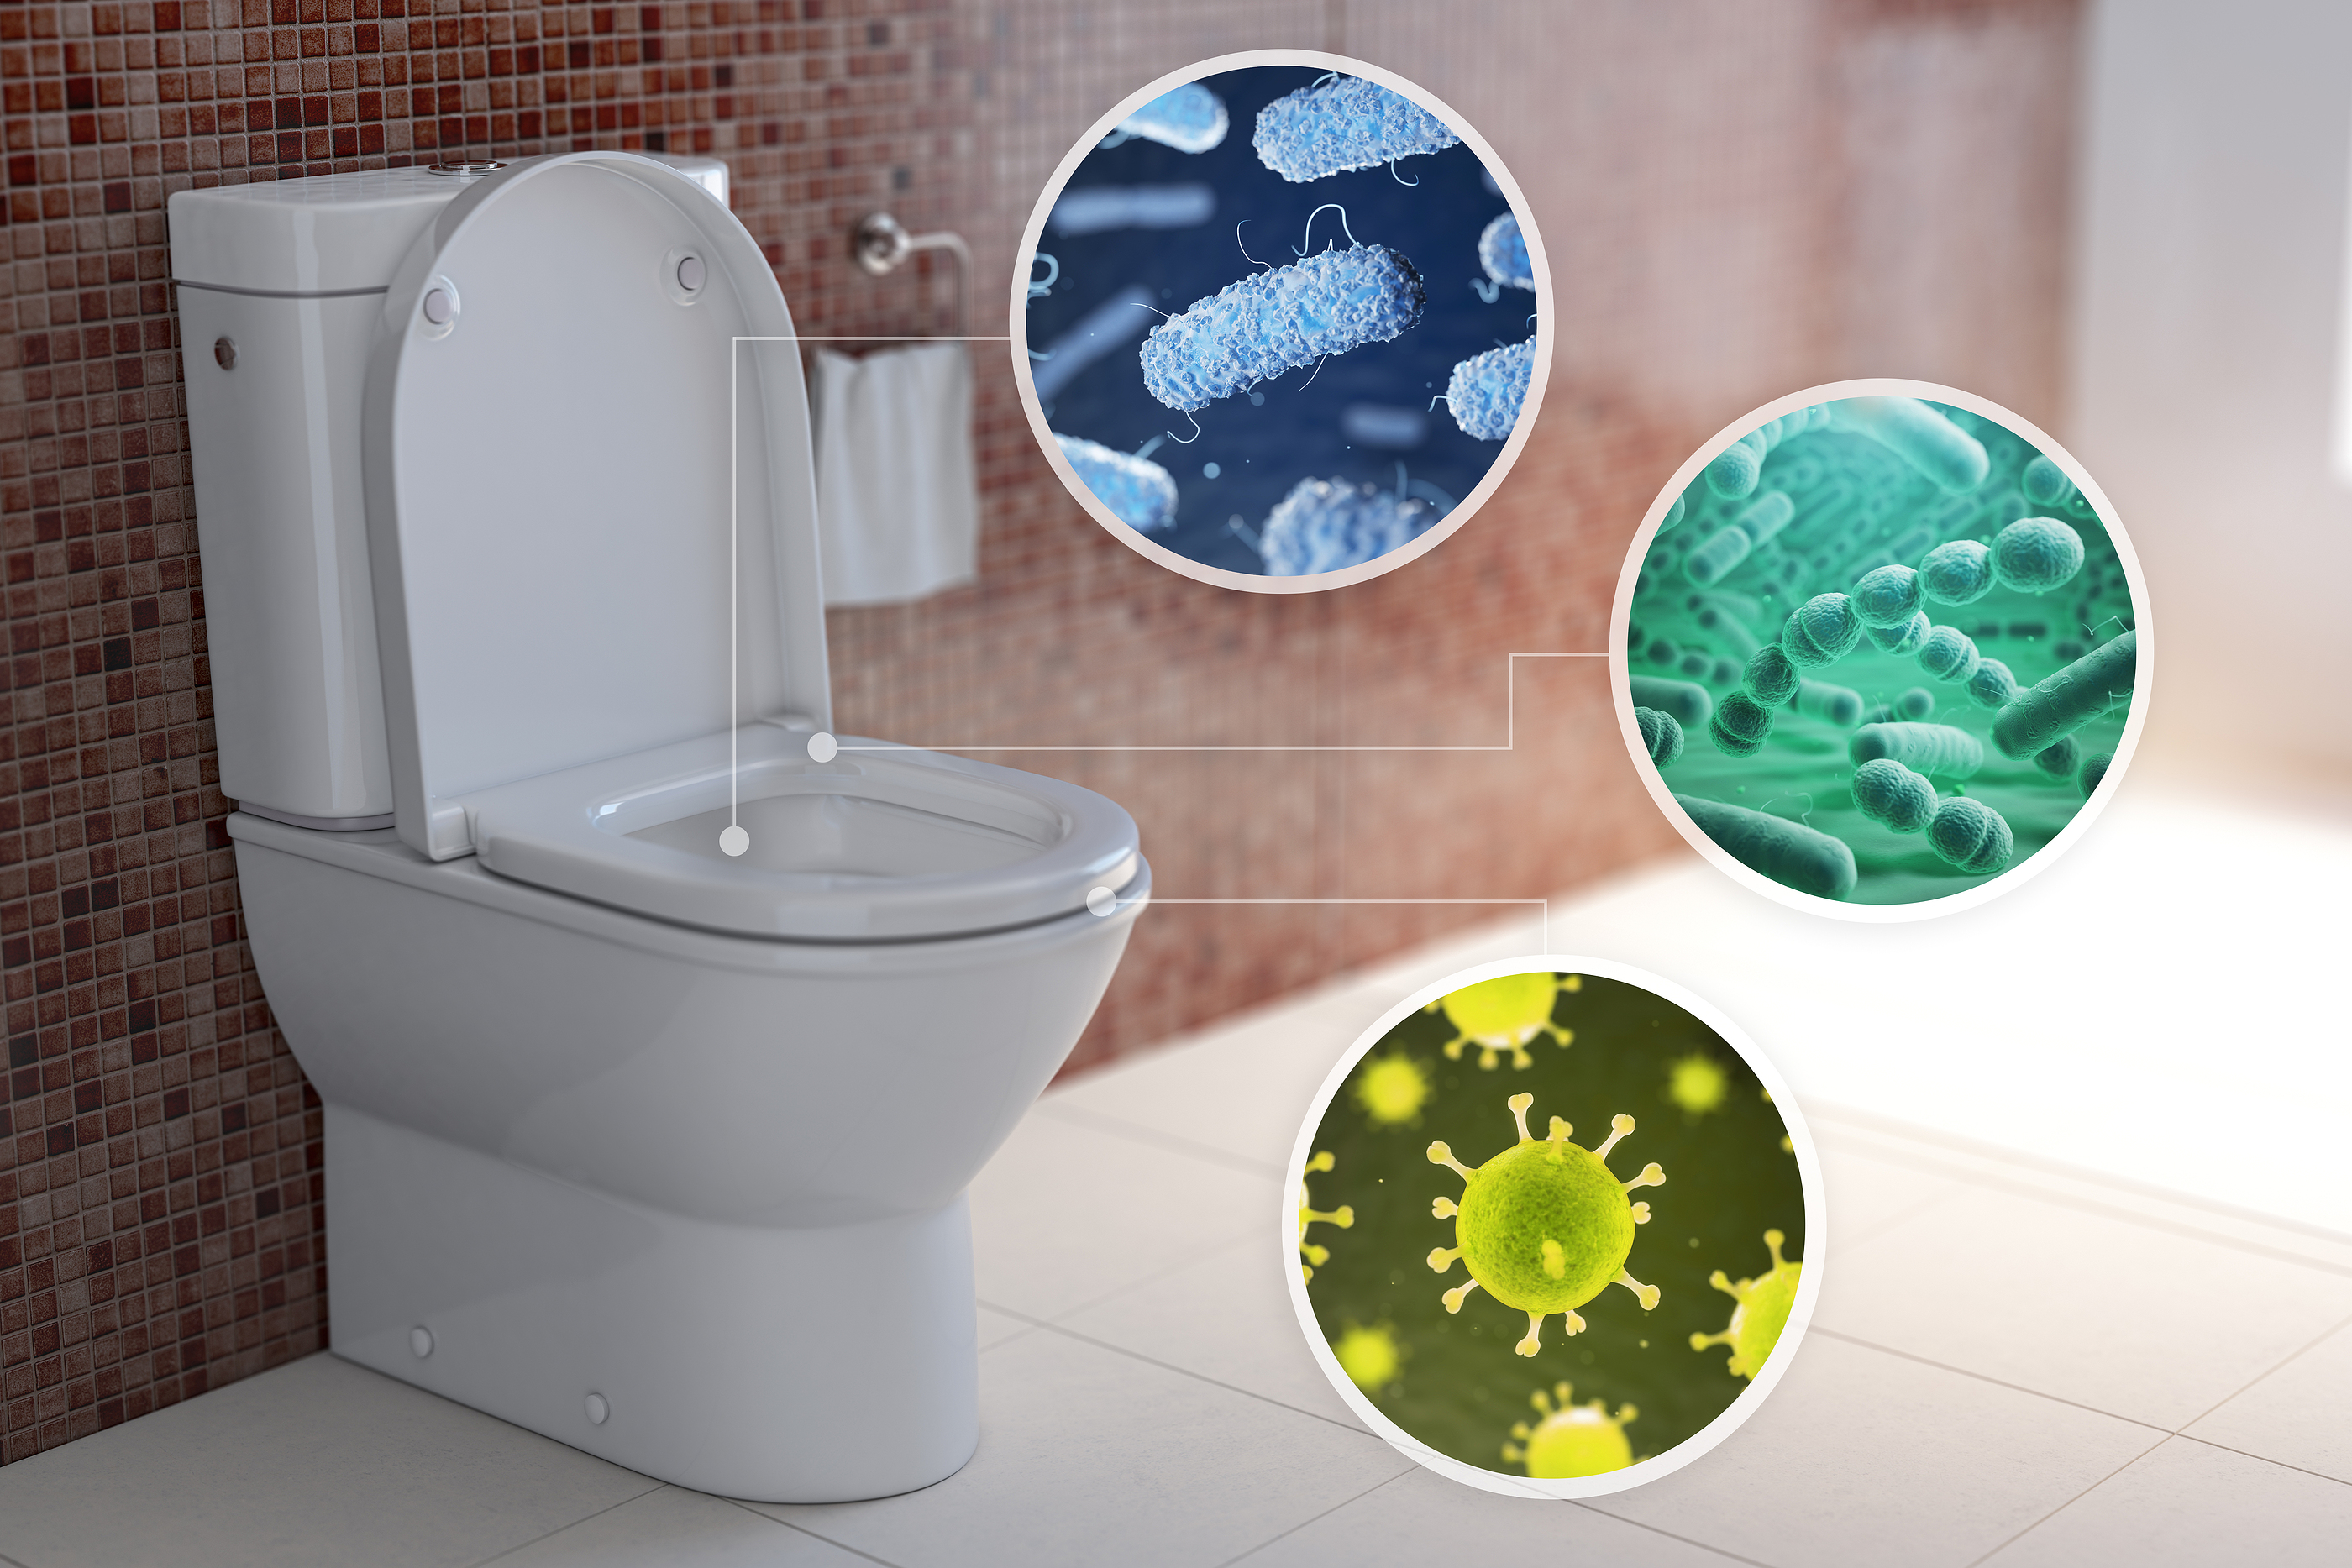 restroom cleaning, restroom disinfection, detroit restroom cleaning